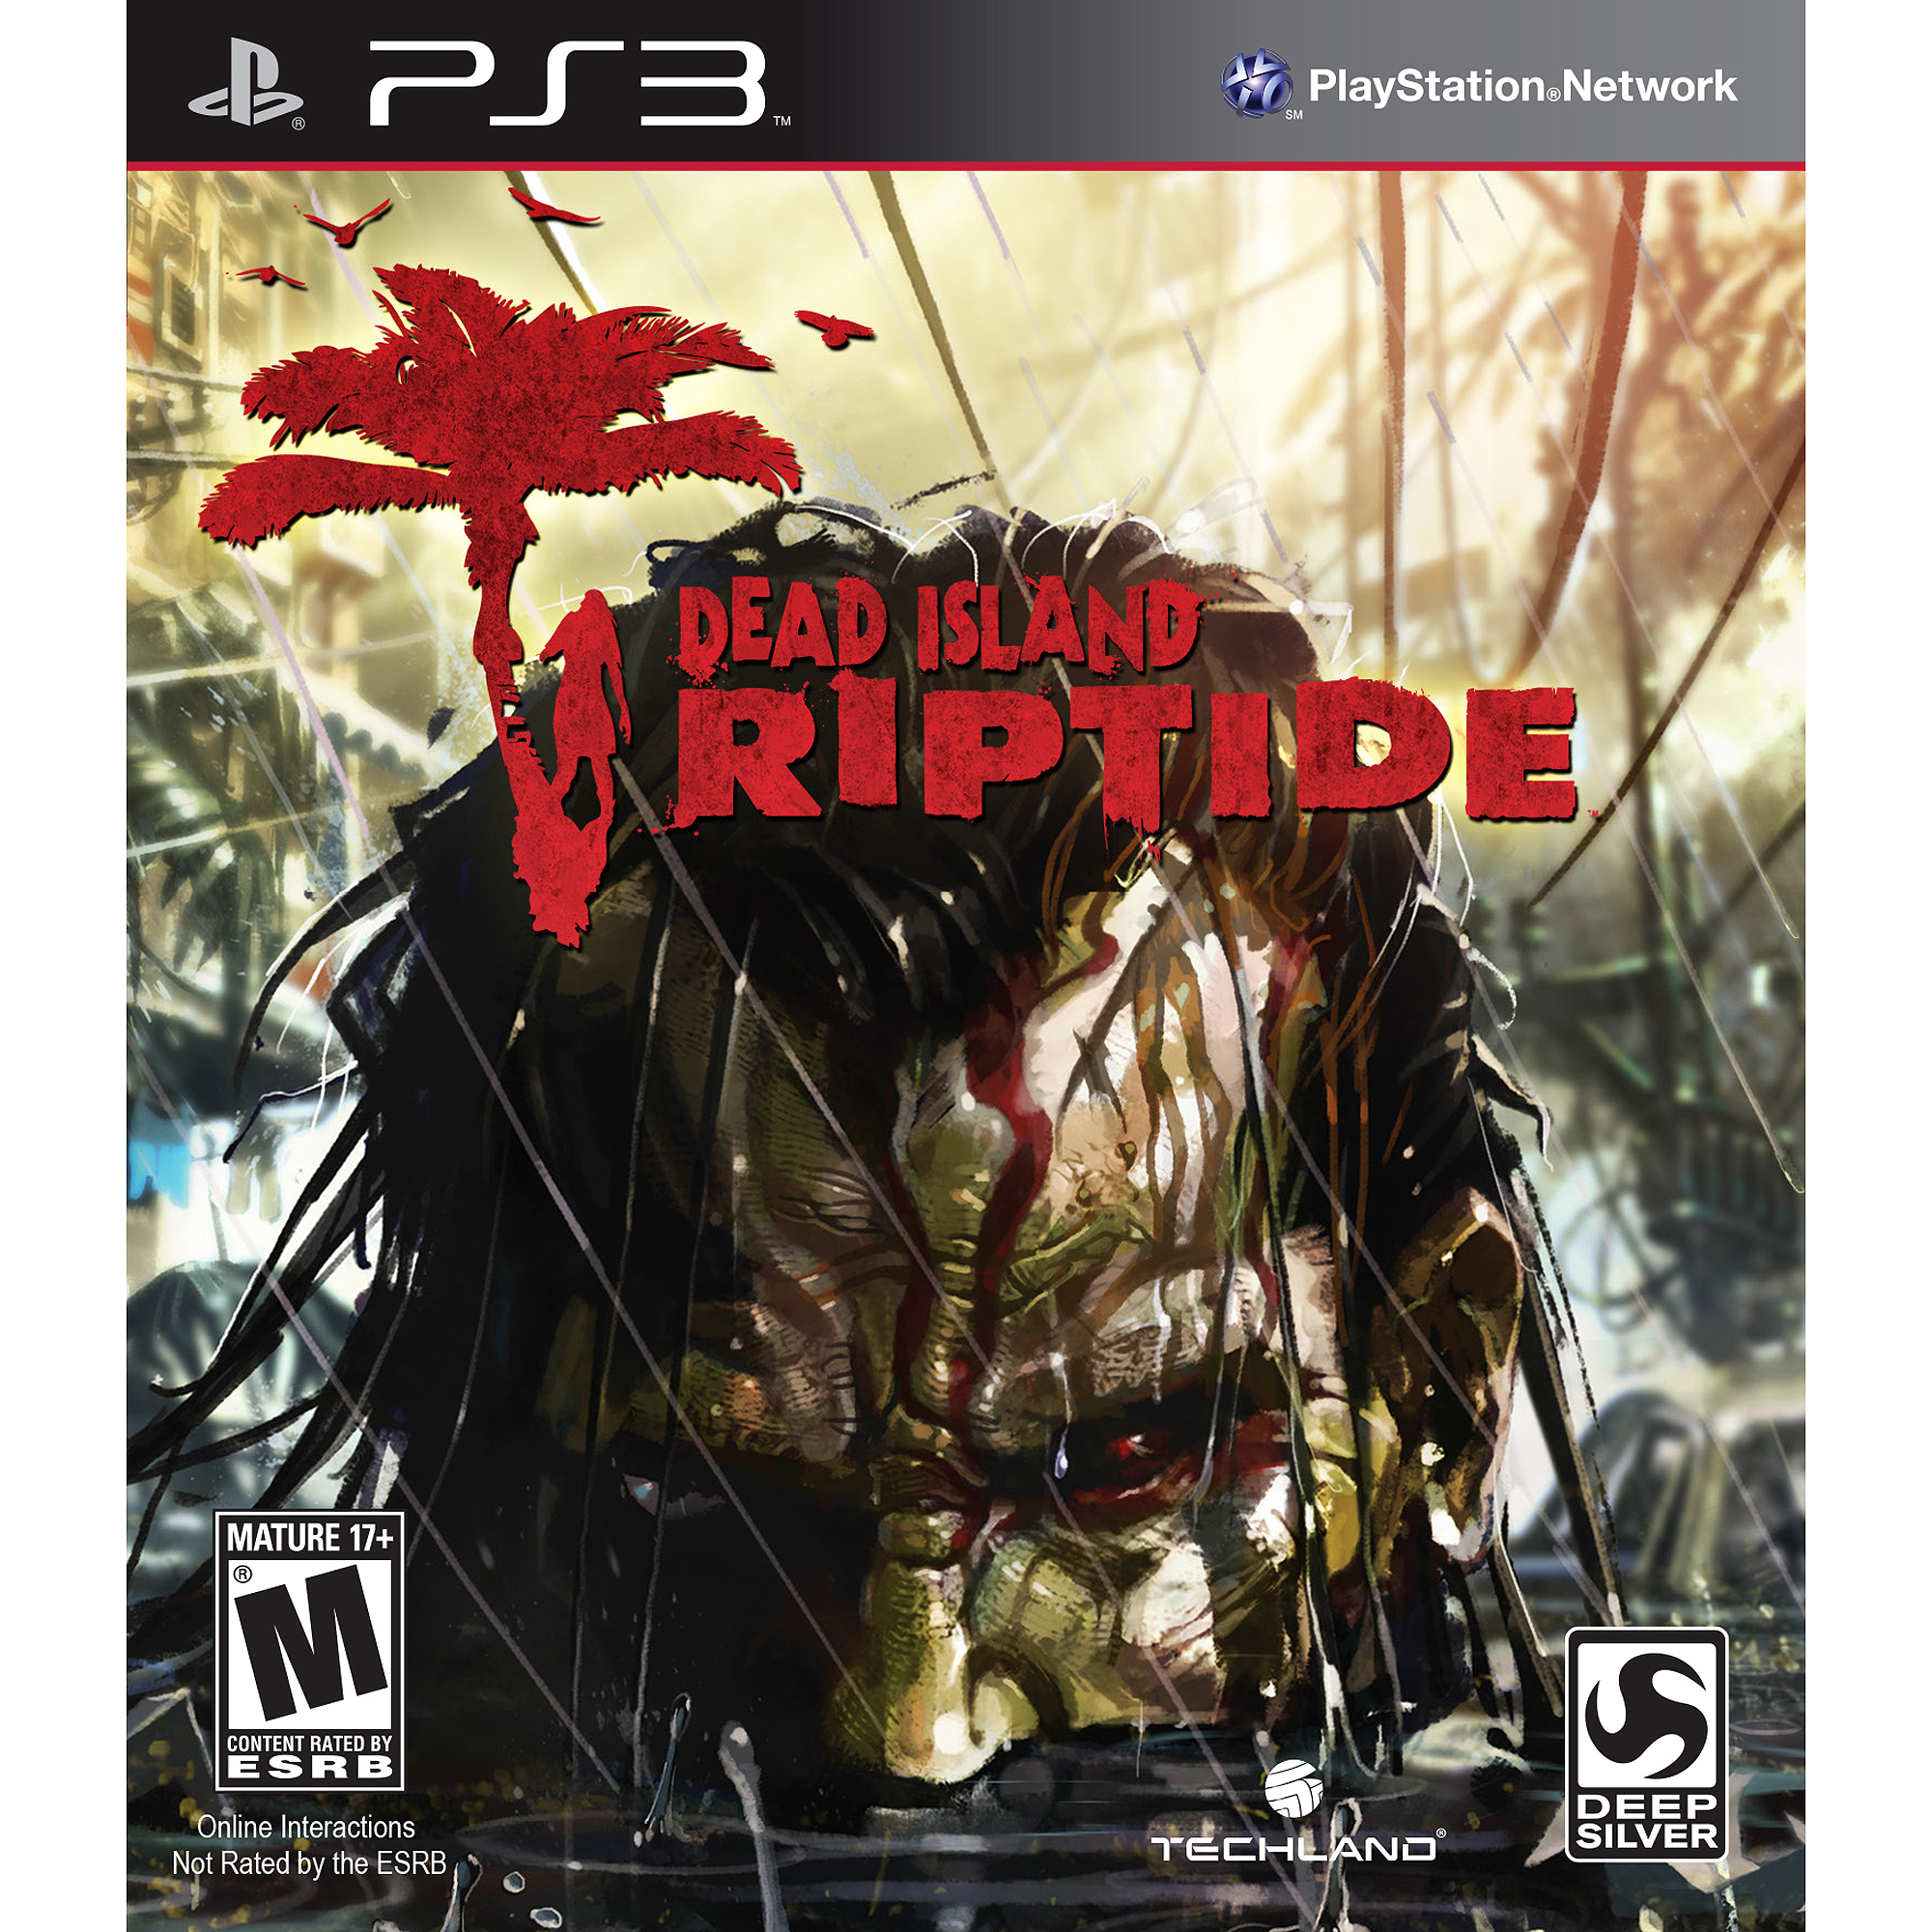 Dead Island Riptide (PS3) - Pre-Owned